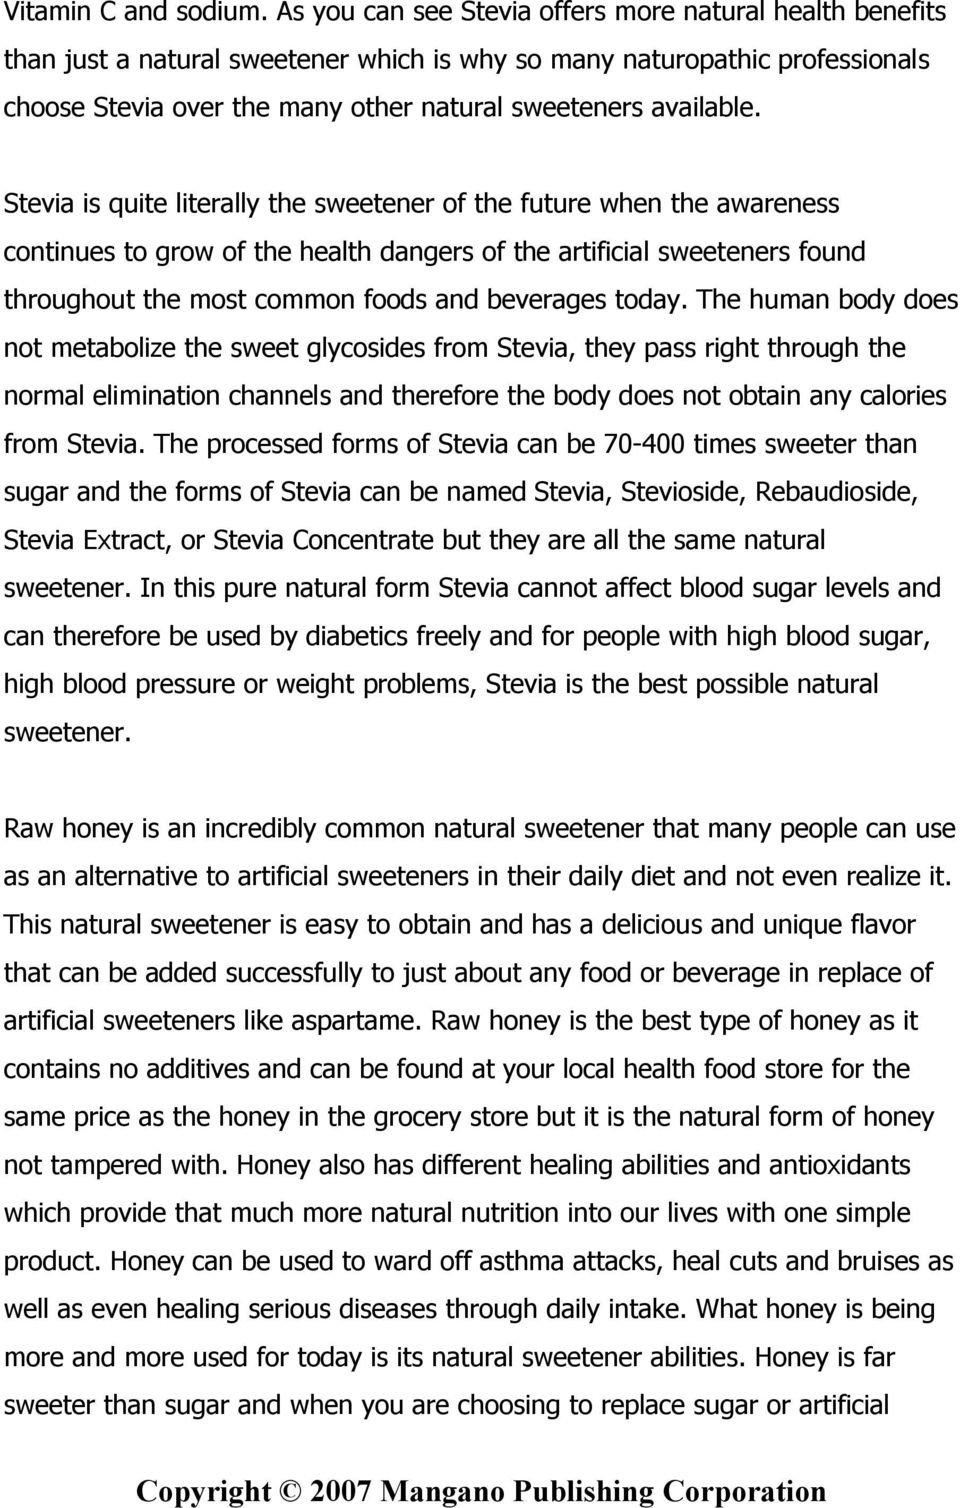 Stevia is quite literally the sweetener of the future when the awareness continues to grow of the health dangers of the artificial sweeteners found throughout the most common foods and beverages